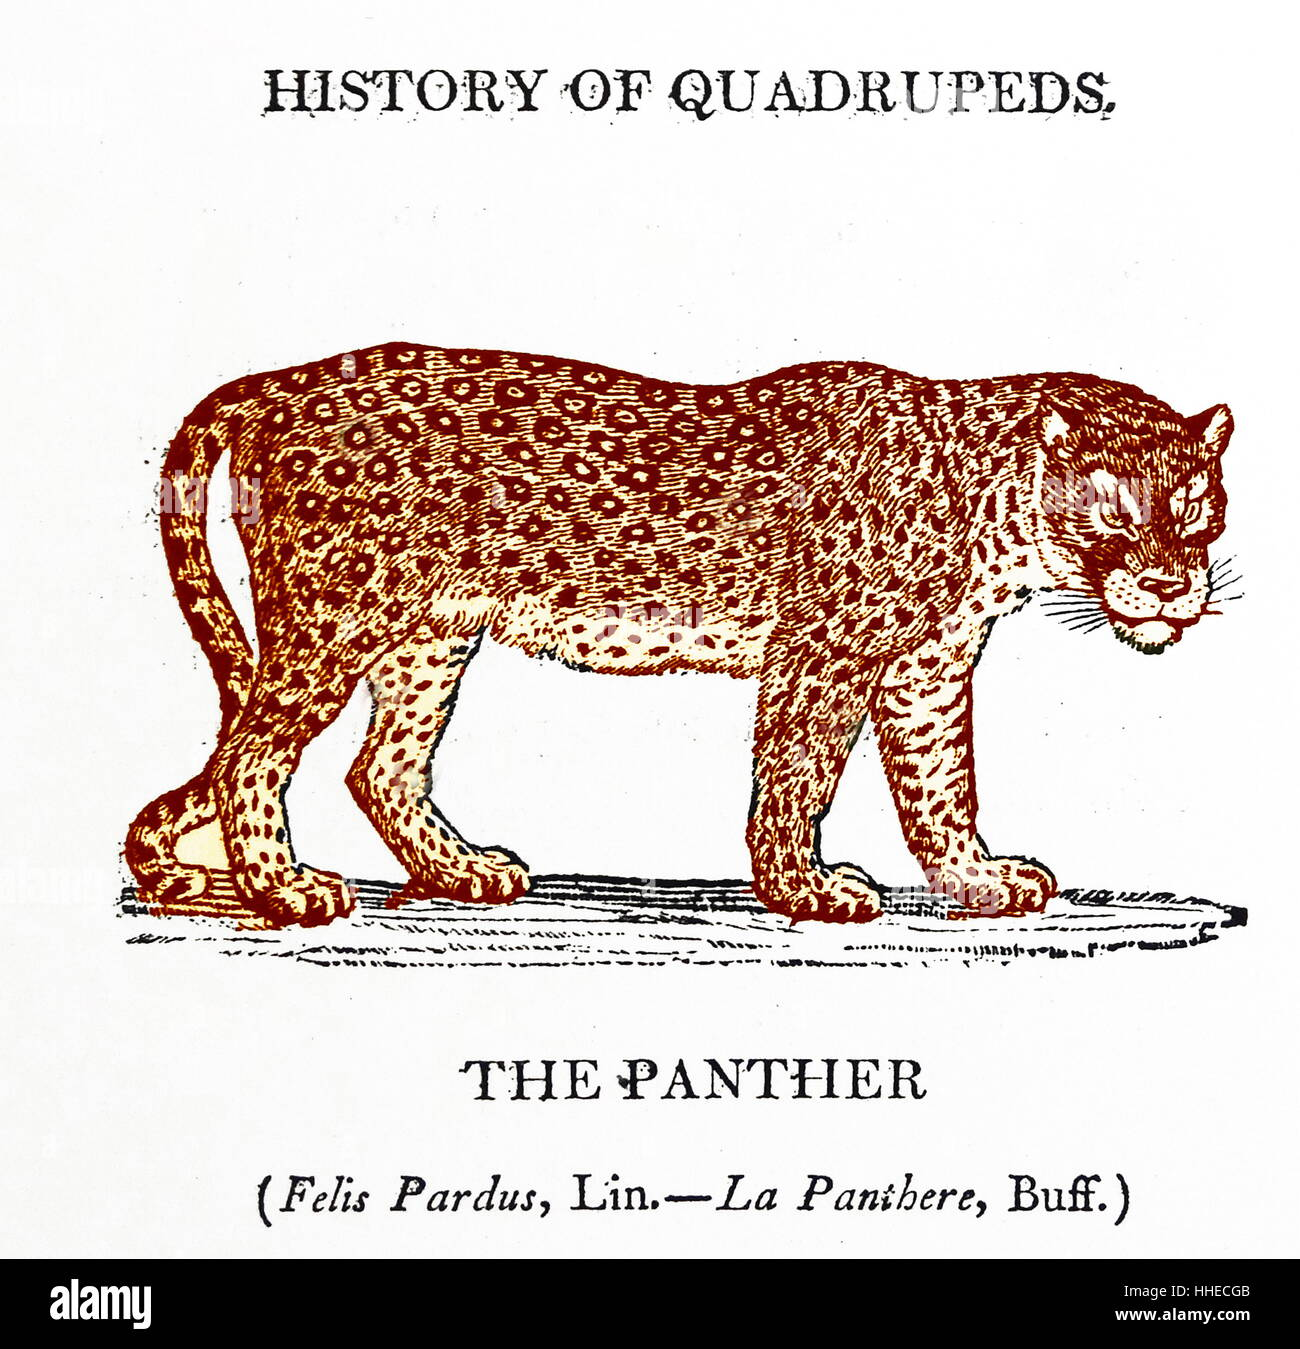 THE PANTHER from Thomas Bewick A General History of Quadrupeds, Newcastle upon Tyne, 1790. Woodcut - Stock Image